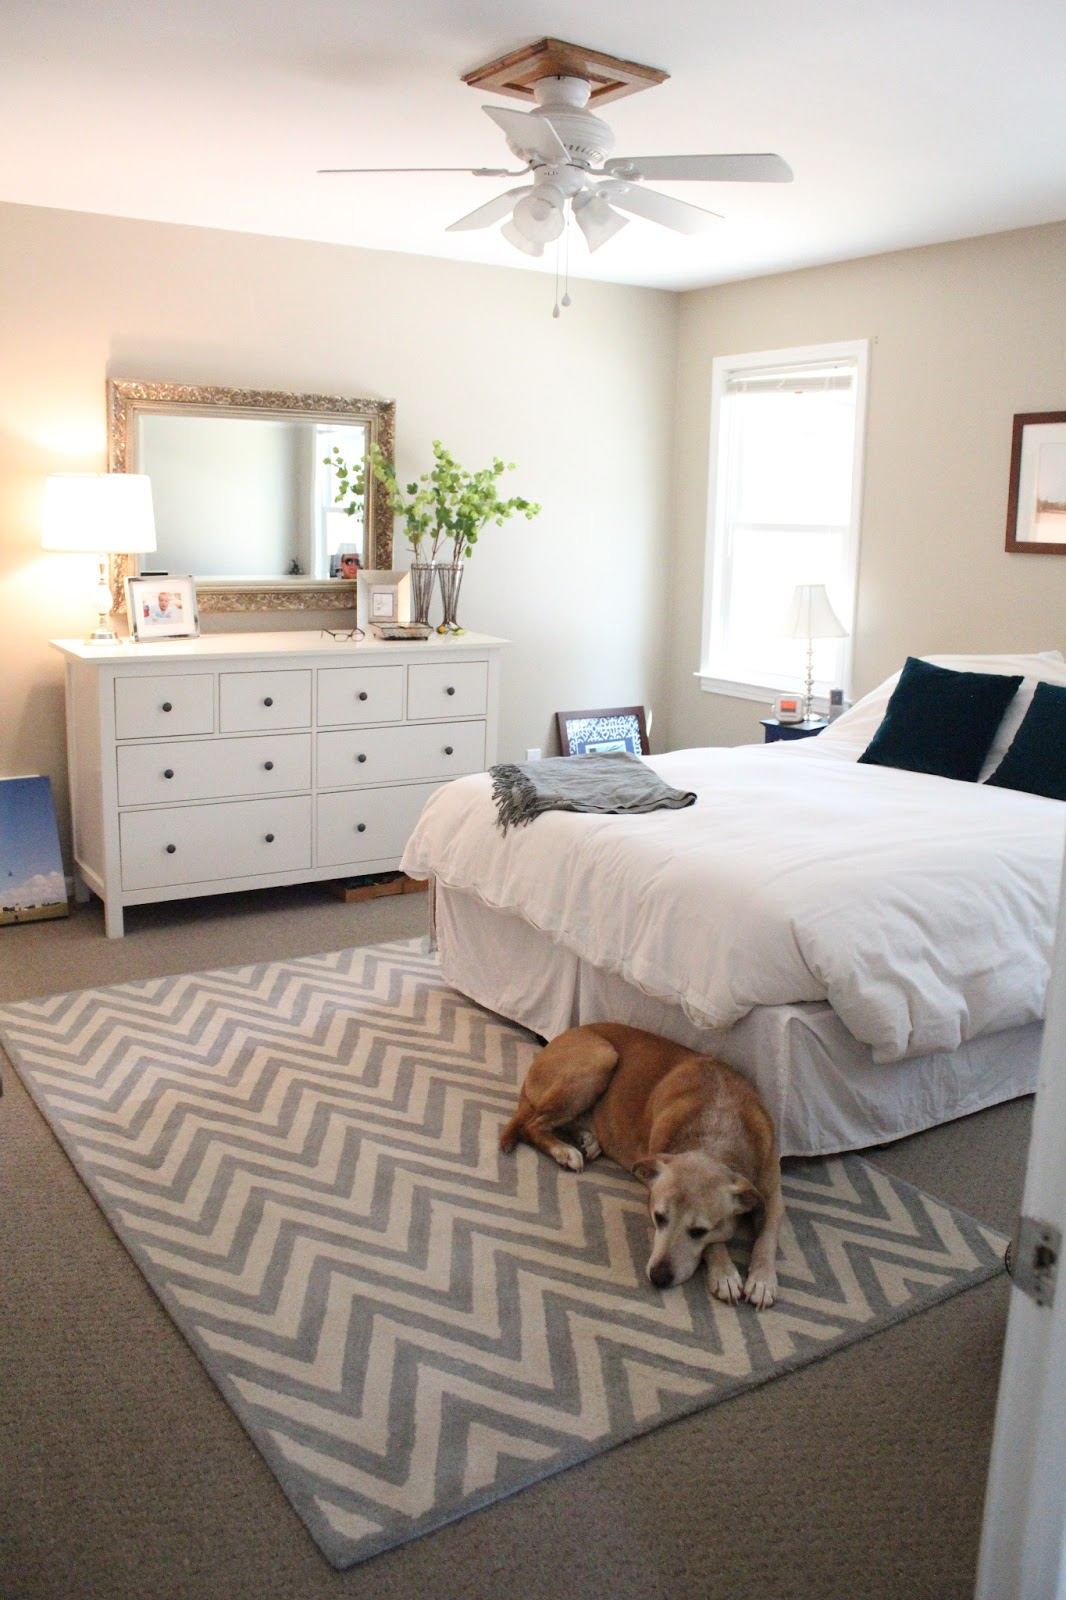 23 Simple Bedroom Decor That Will Make You Happier